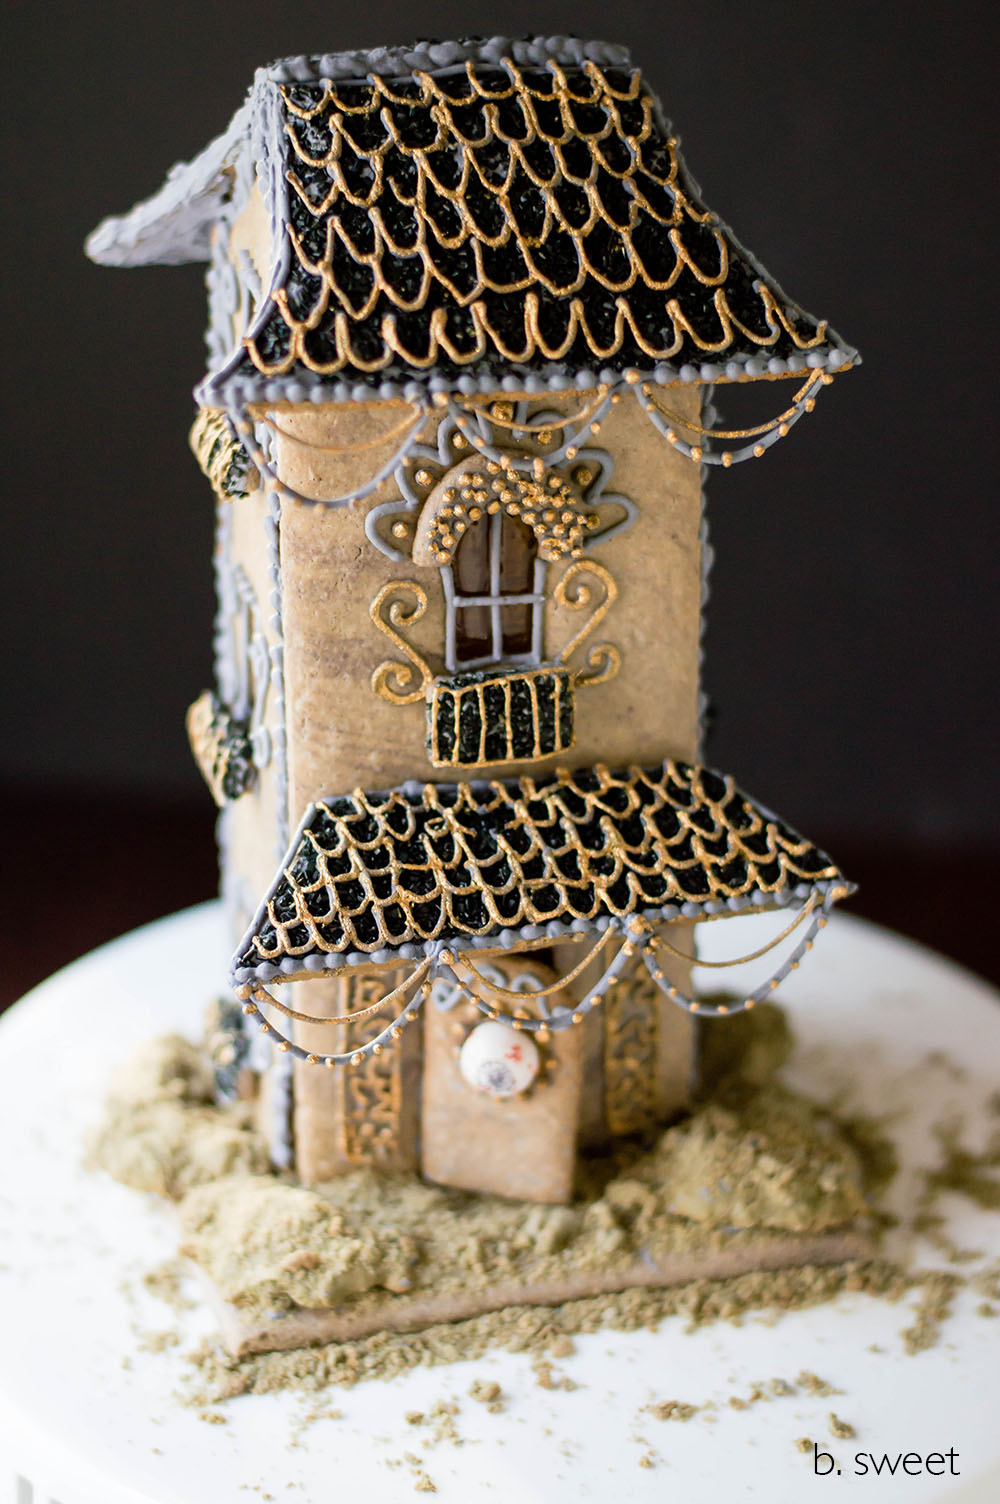 Halloween Haunted Tower Gingerbread House - b. sweet